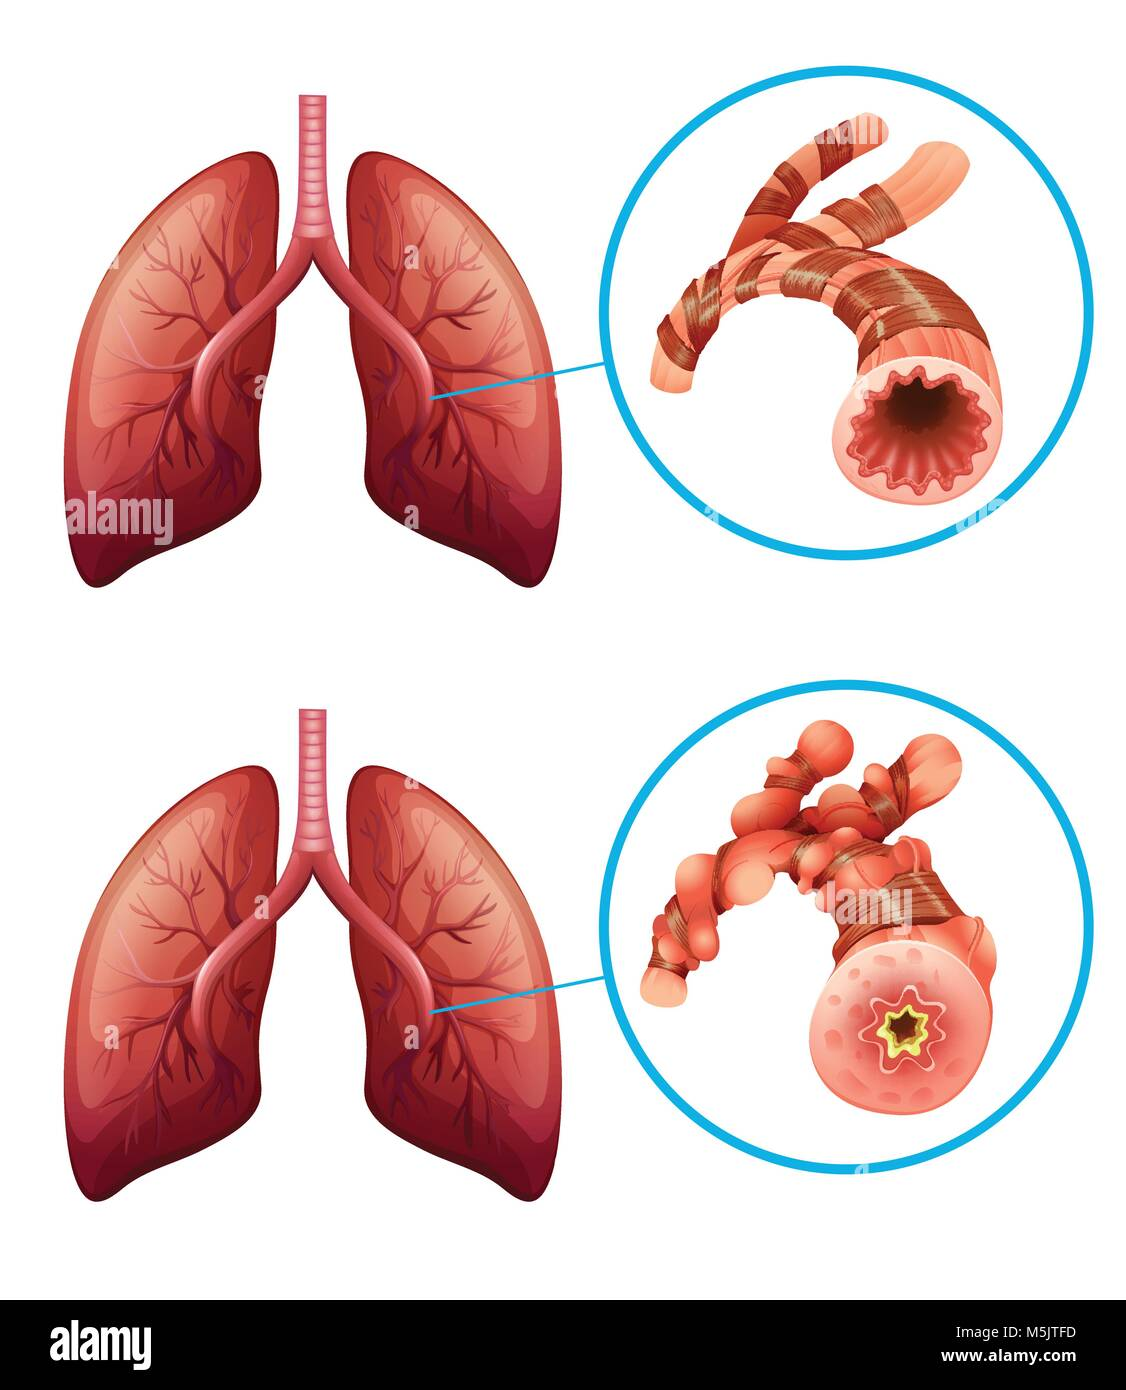 hight resolution of diagram showing lungs with disease illustration stock image